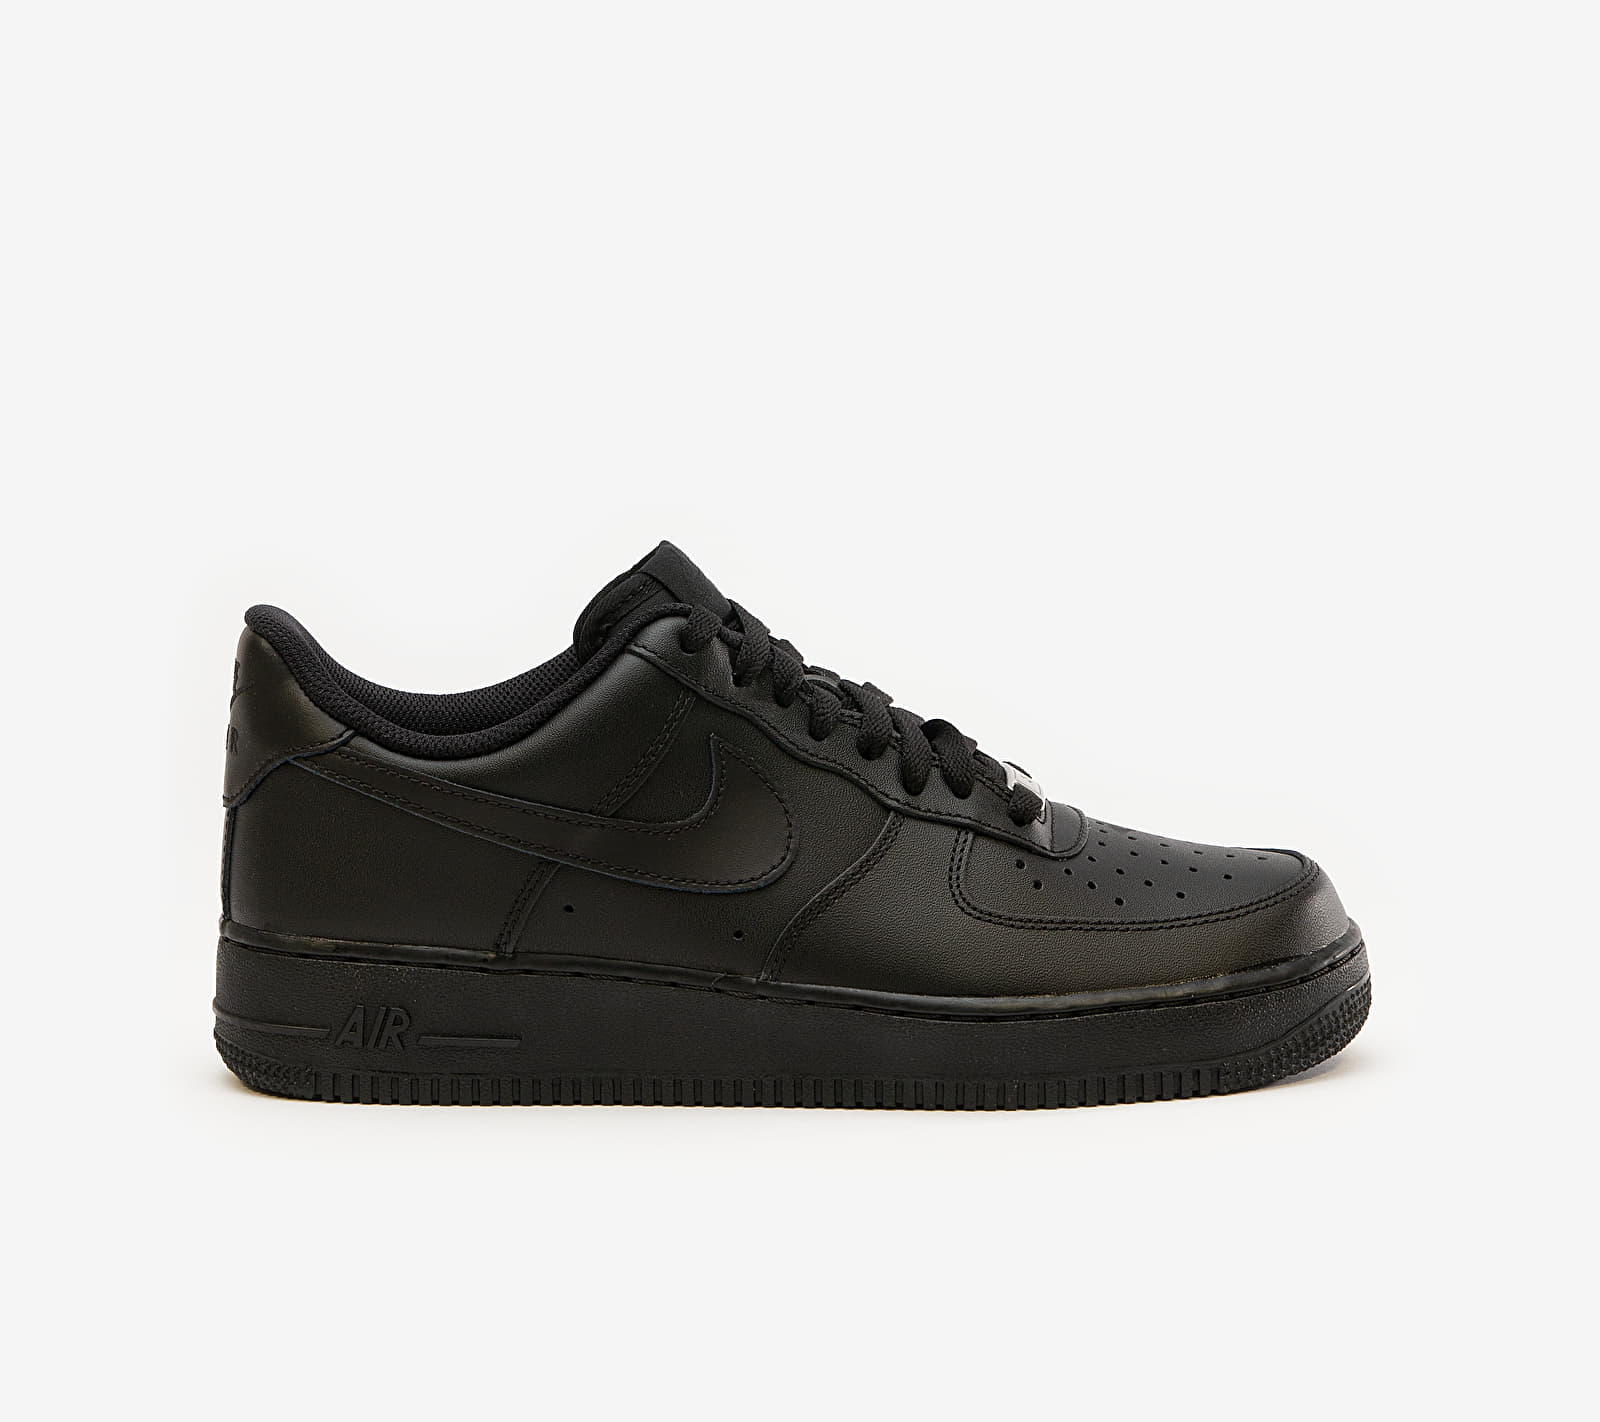 Nike Air Force 1 '07 Black/ Black EUR 45